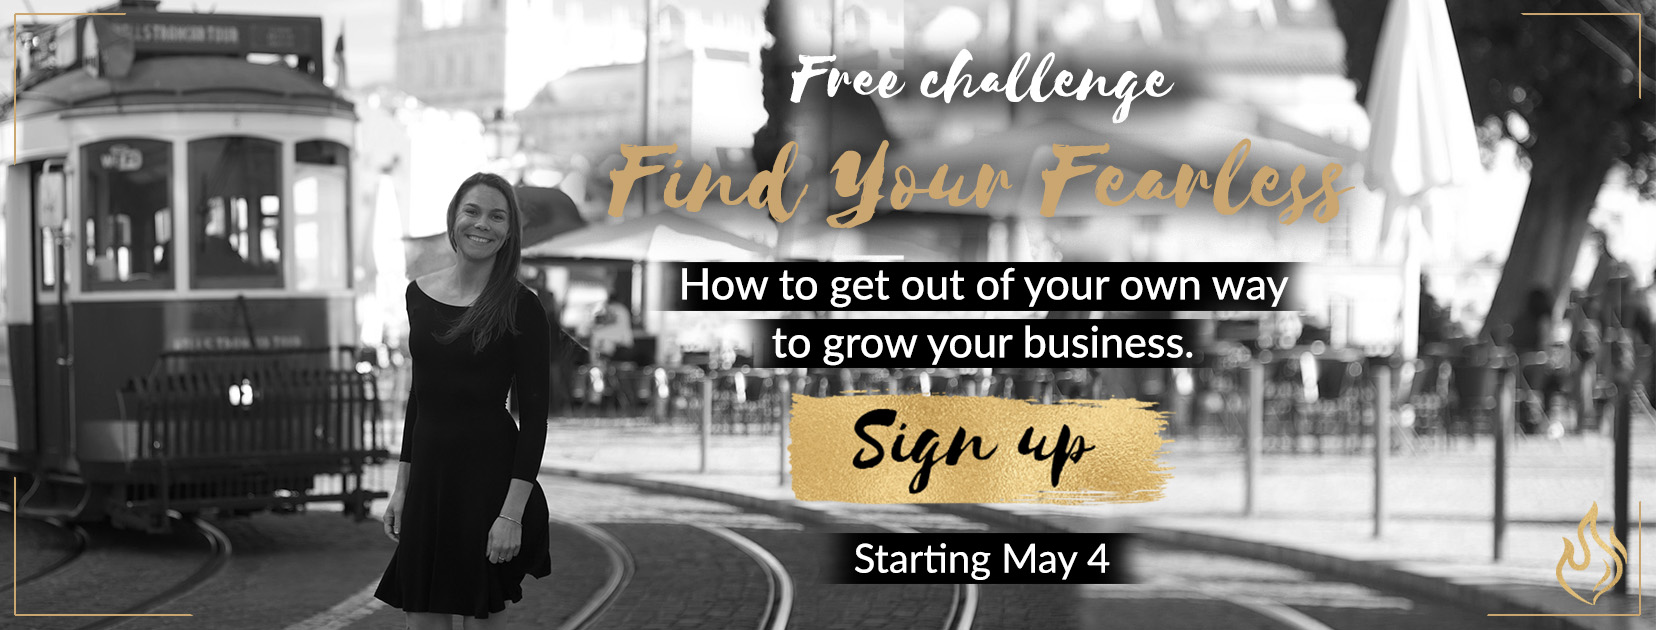 Find Your Fearless Challenge Sign Up